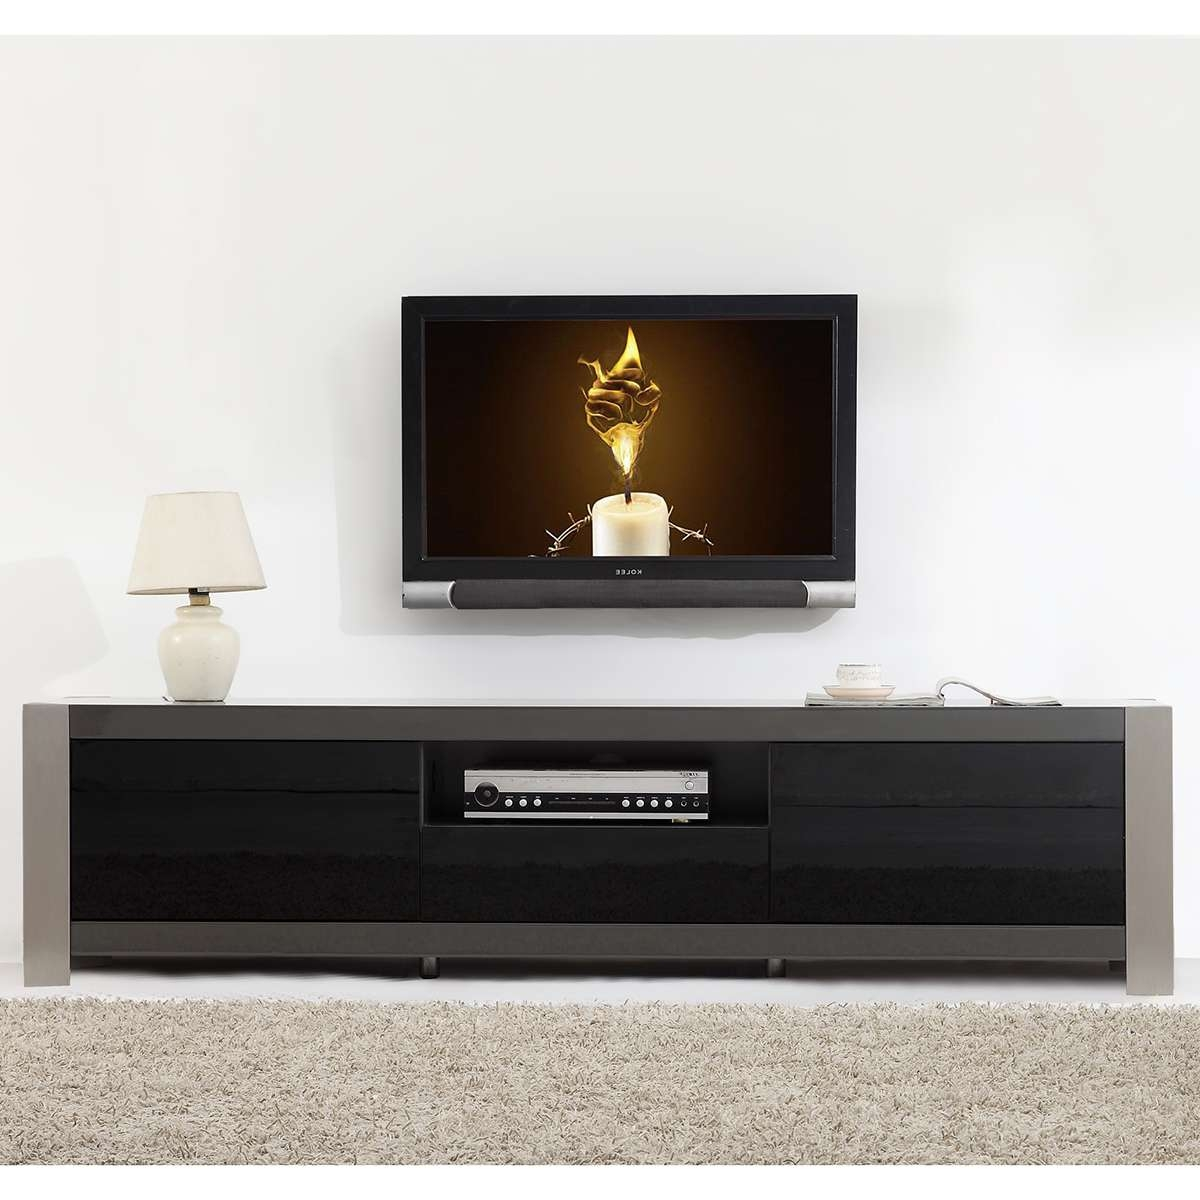 Contemporary Tv Stands Toronto In Stylized Together With Tv Wall Intended For Contemporary Black Tv Stands (View 14 of 15)